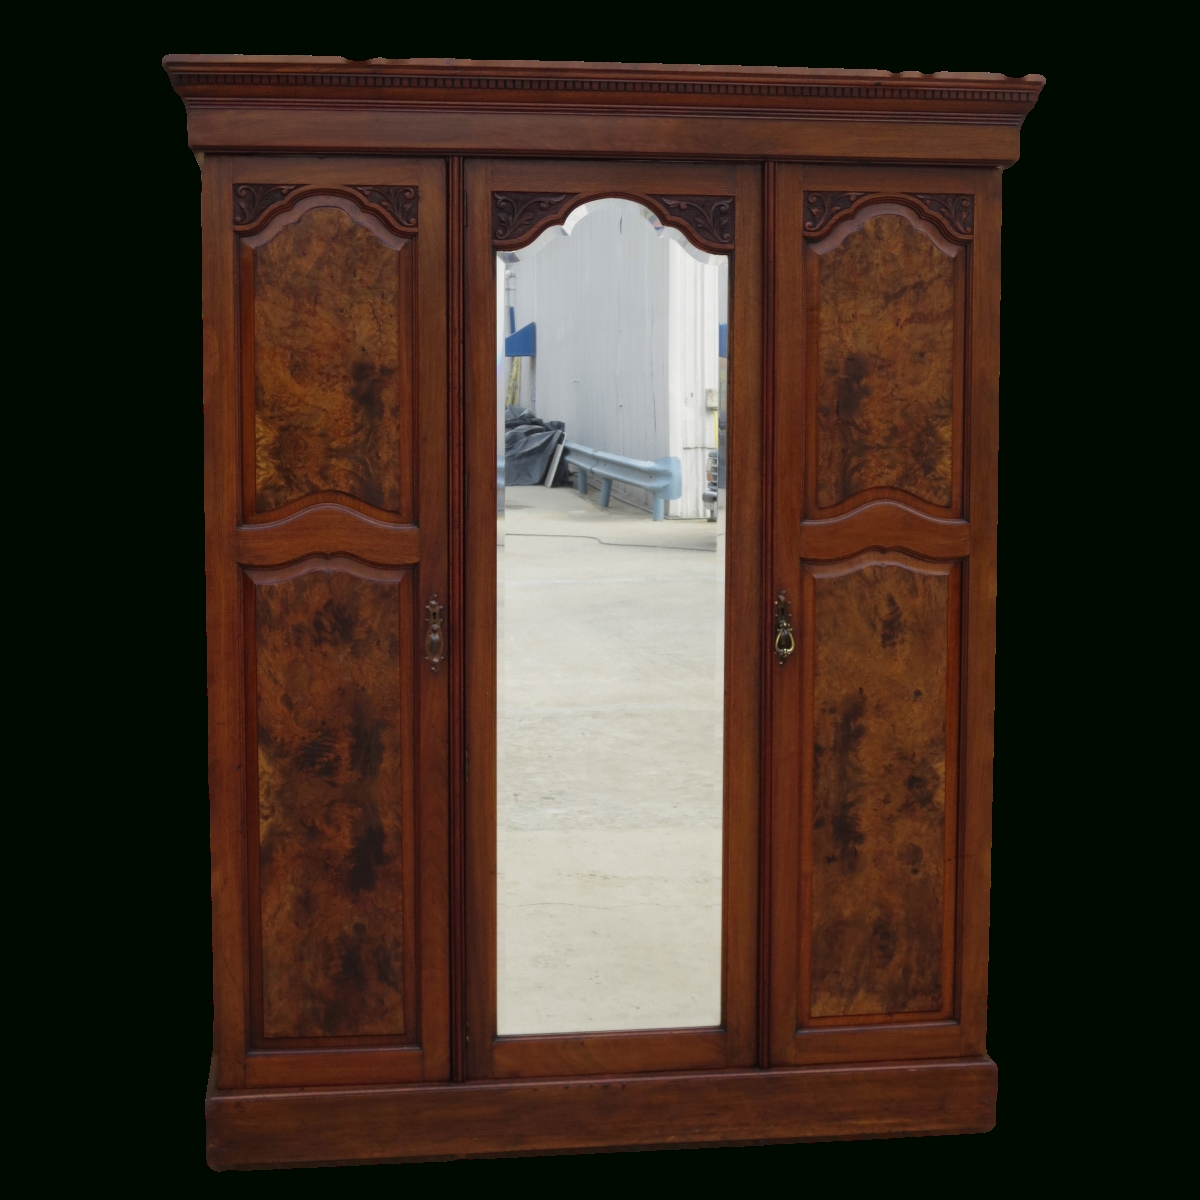 Antique Armoires, Antique Wardrobes, And Antique Furniture From For Old Fashioned Wardrobes (View 1 of 15)